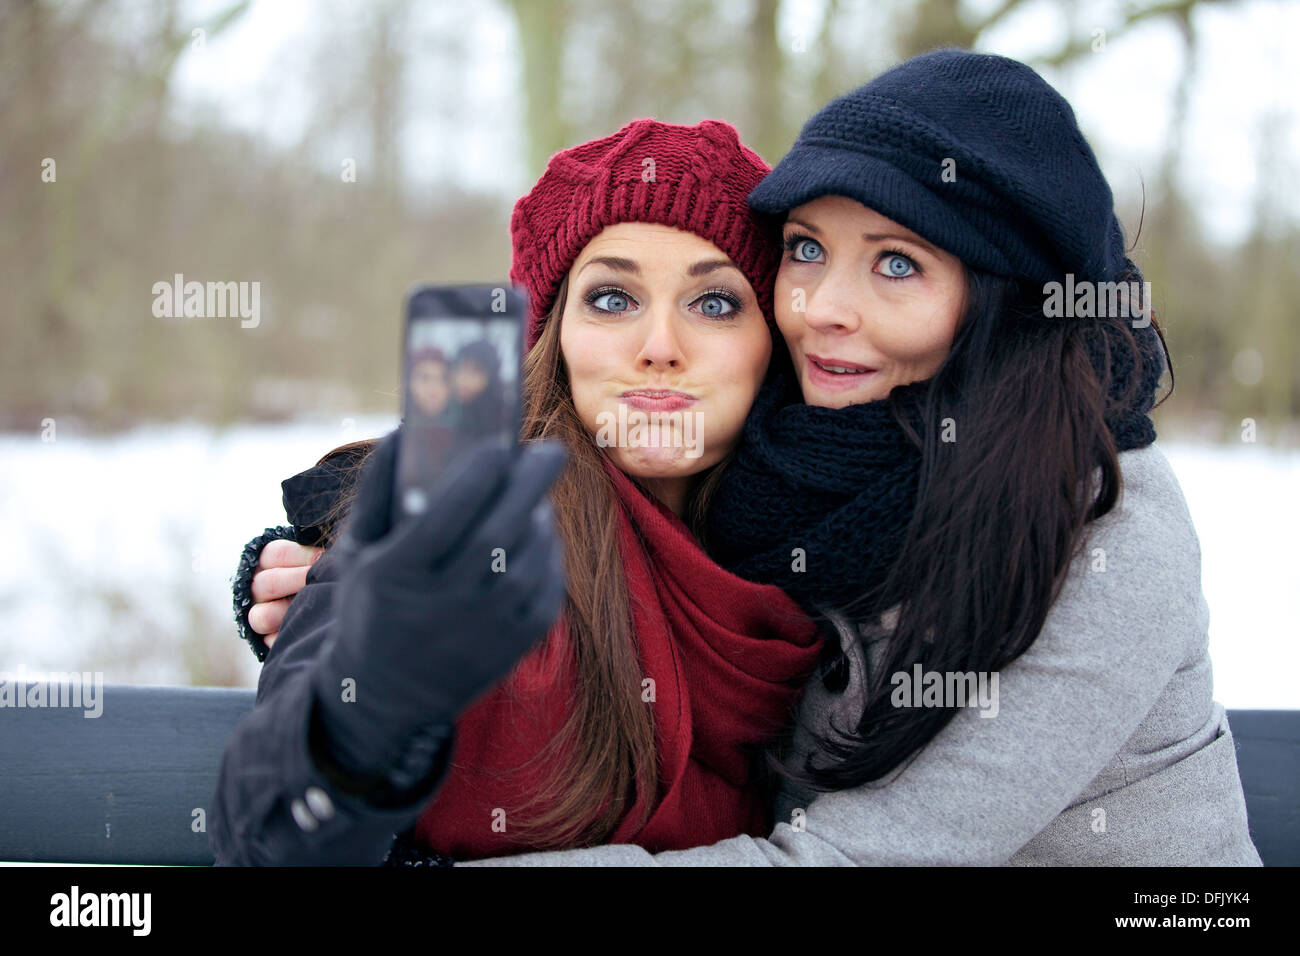 Friends with camera phone having fun by making faces - Stock Image